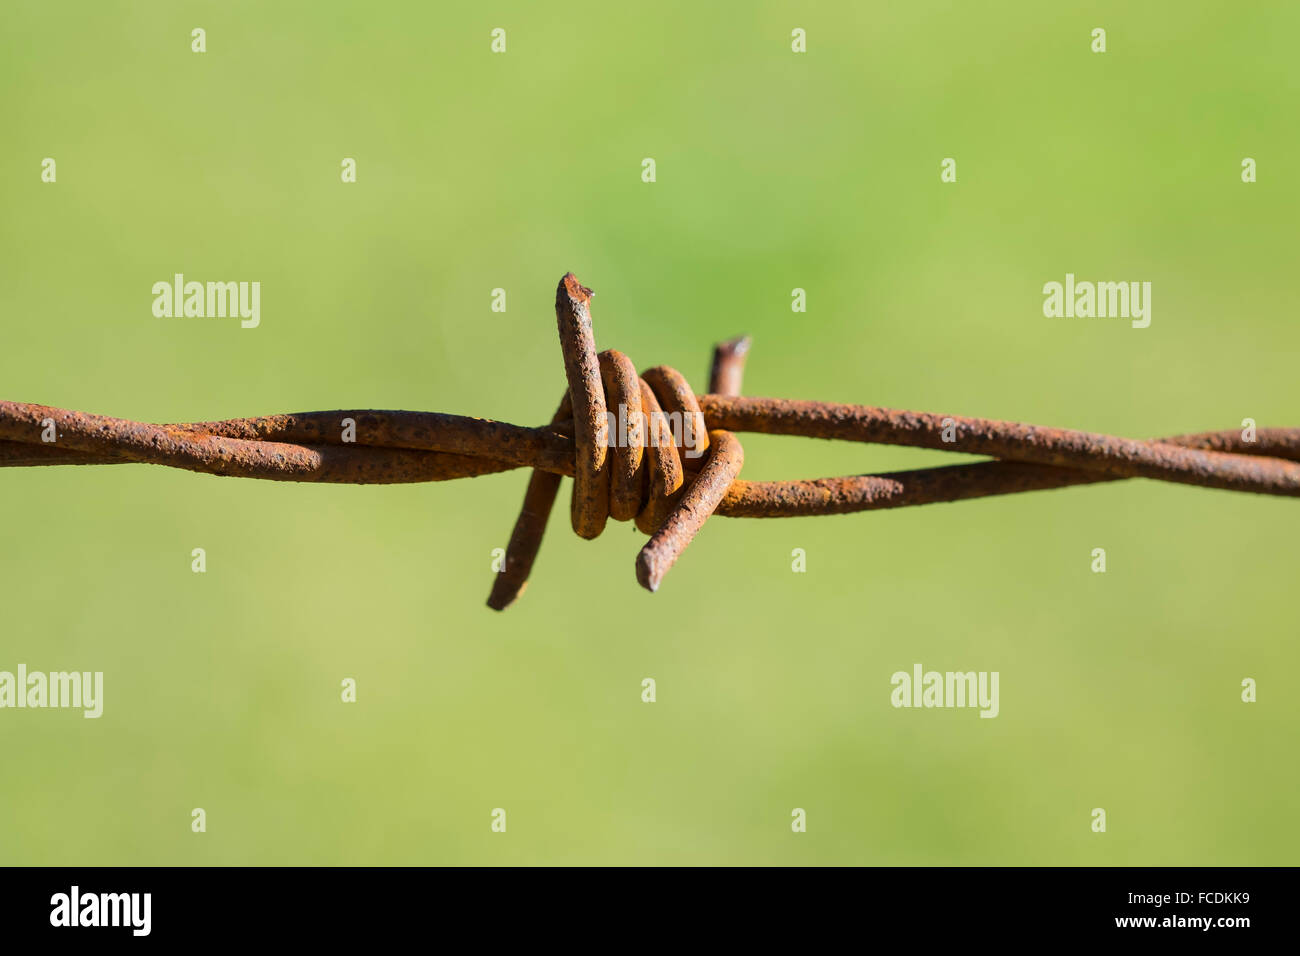 Rusty barbed wire fence Stock Photo